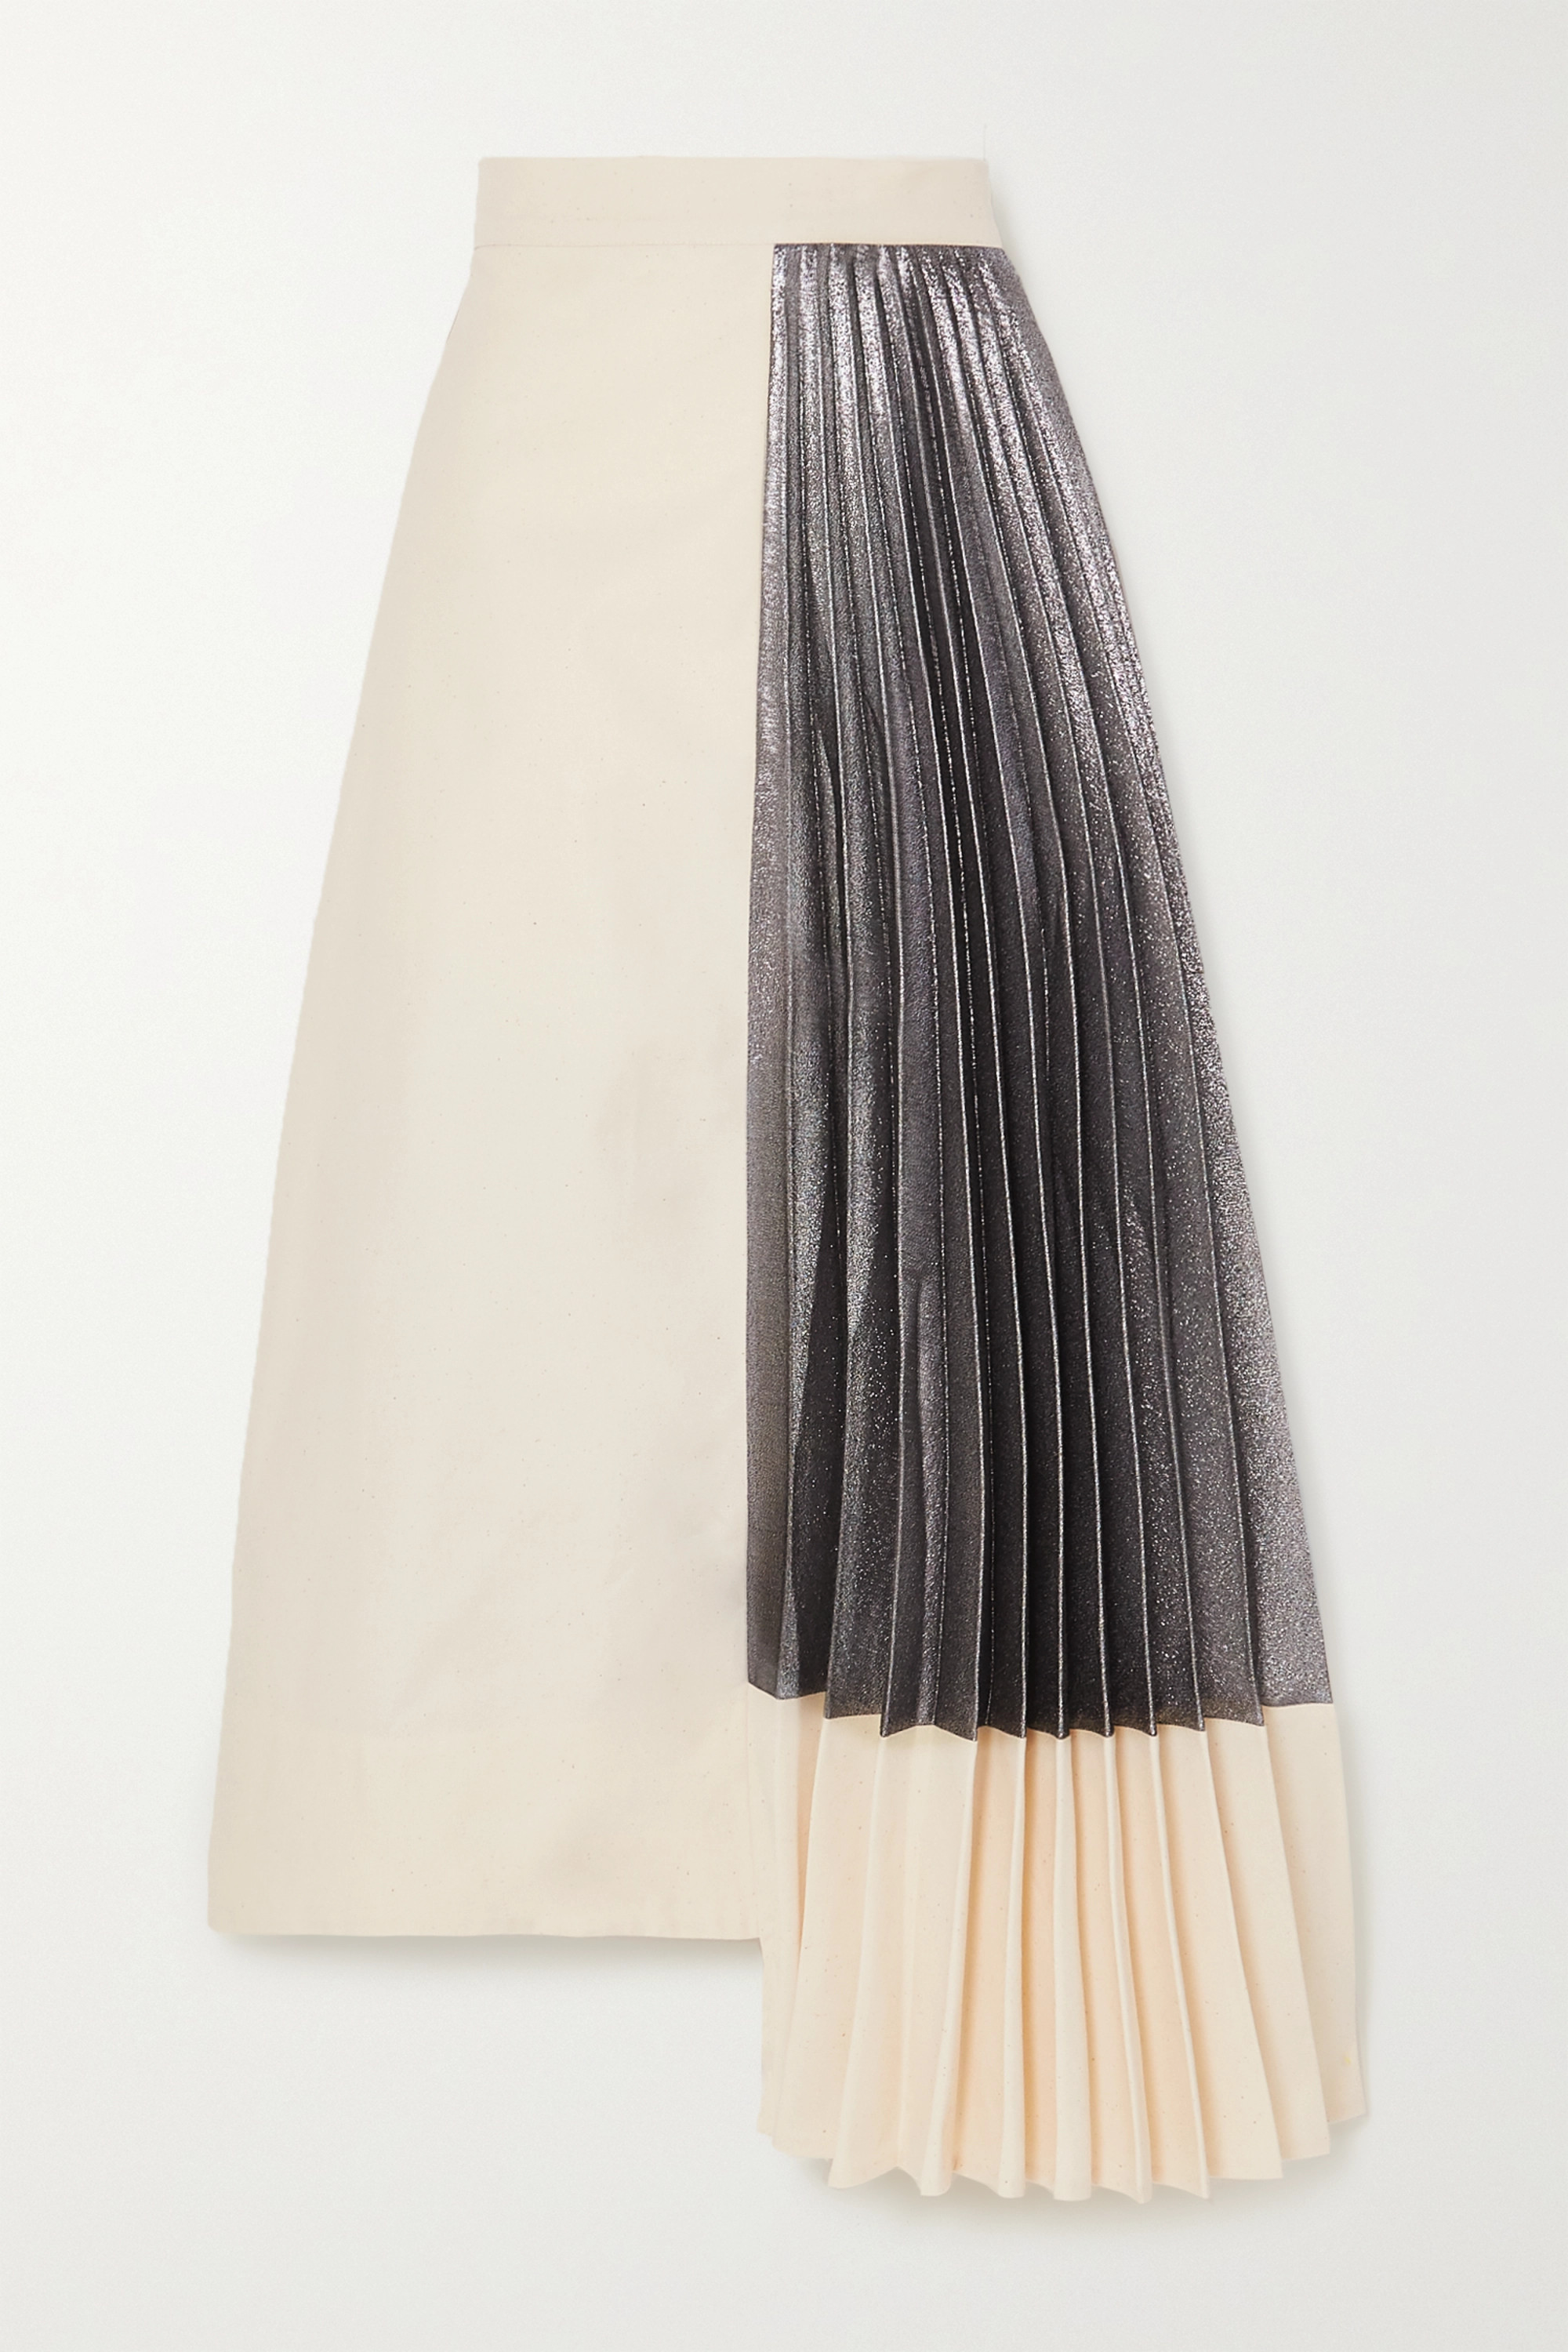 ARTCLUB Hermes asymmetric pleated cotton and lamé midi skirt